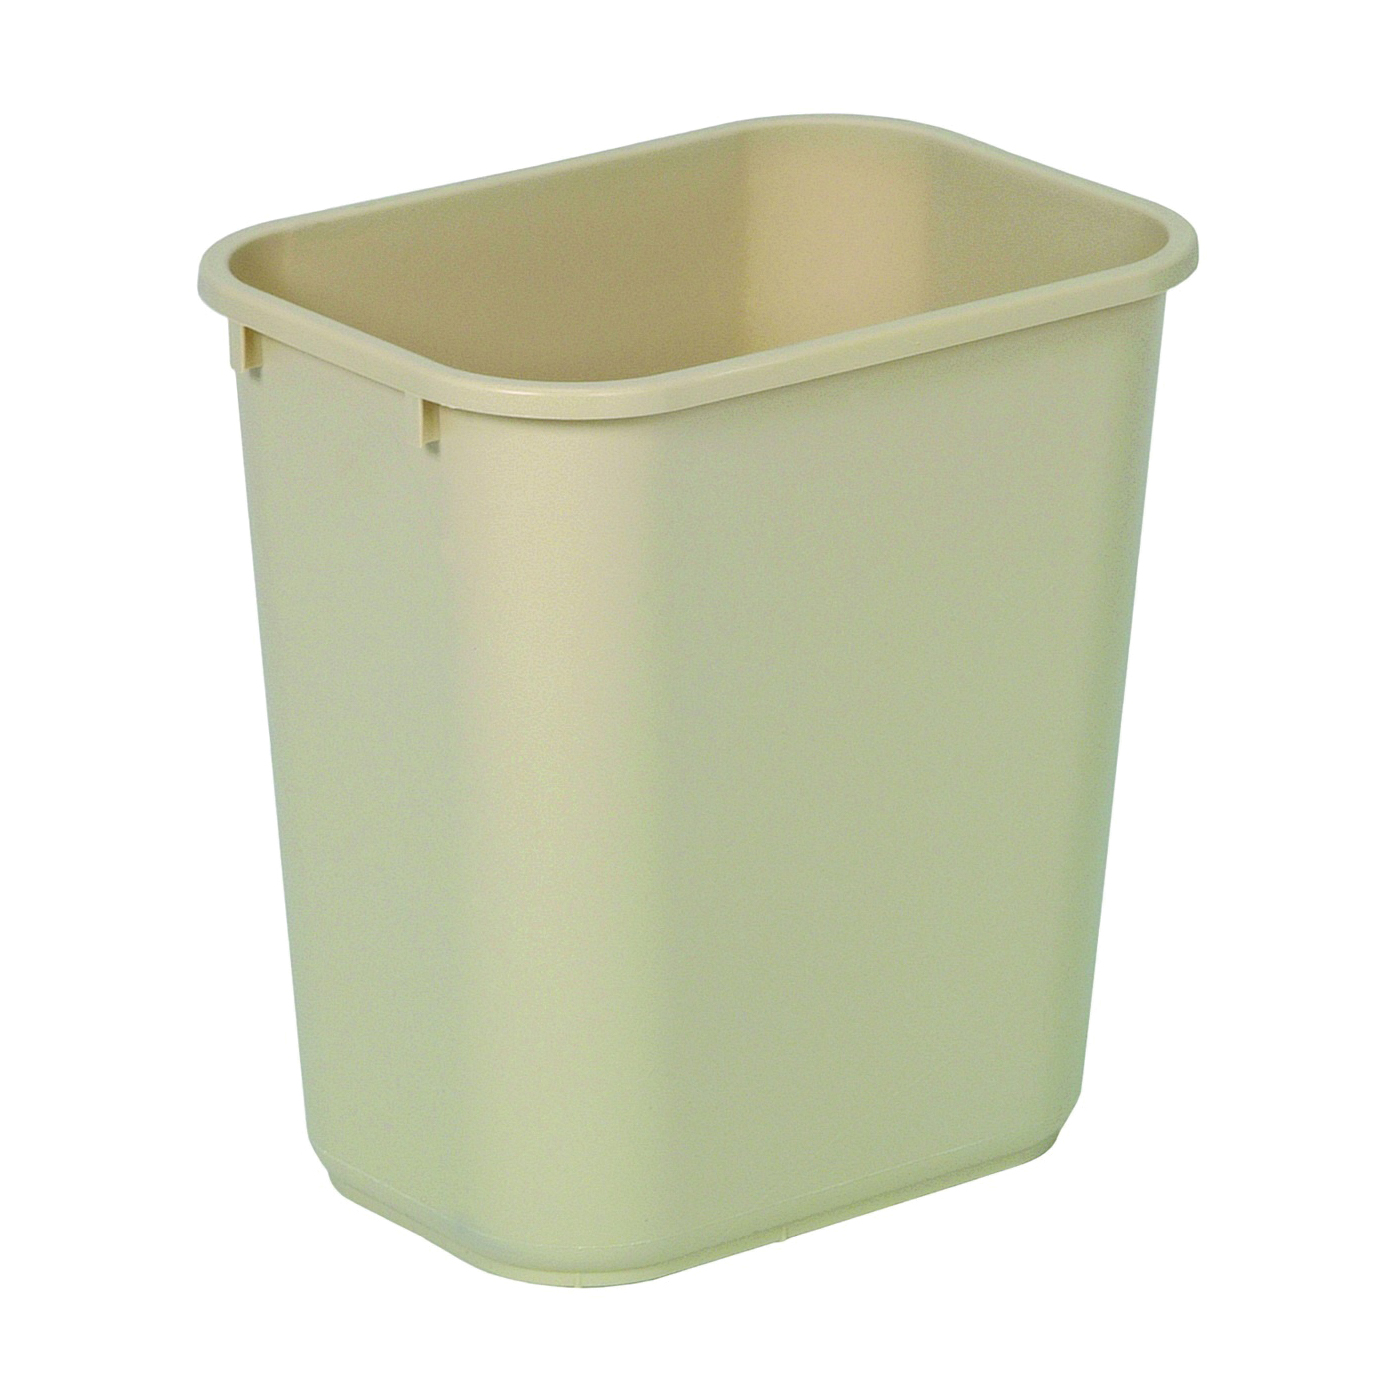 Picture of CONTINENTAL COMMERCIAL 2818BE Waste Basket, 28.125 qt Capacity, Rectangular, Plastic, Beige, 10-1/2 in W, 15 in H